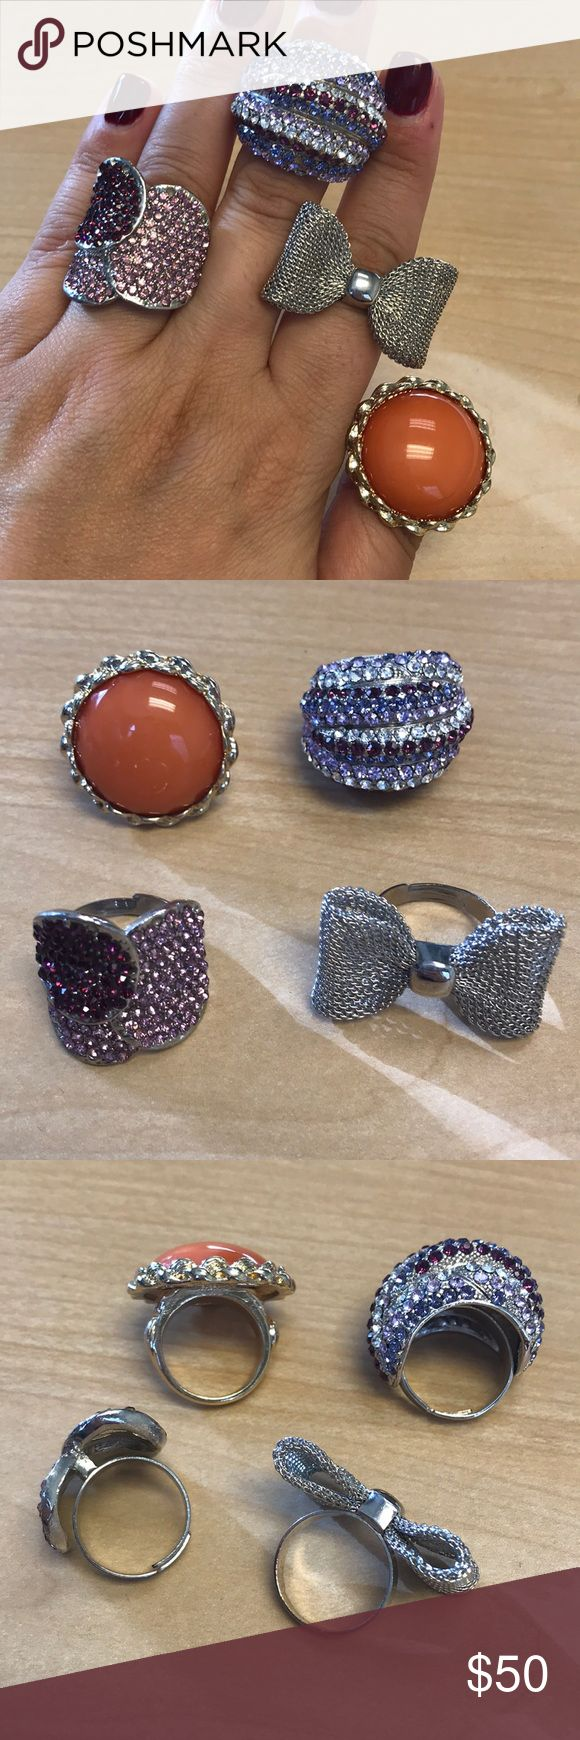 Costume jewelry rings 4 beautiful costume jewelry rings. 3 are adjustable. I am usually a size 7/8. Sold as is. One of the rings has 3 stones missing but it is really not noticeable. All 4 priced together. Jewelry Rings